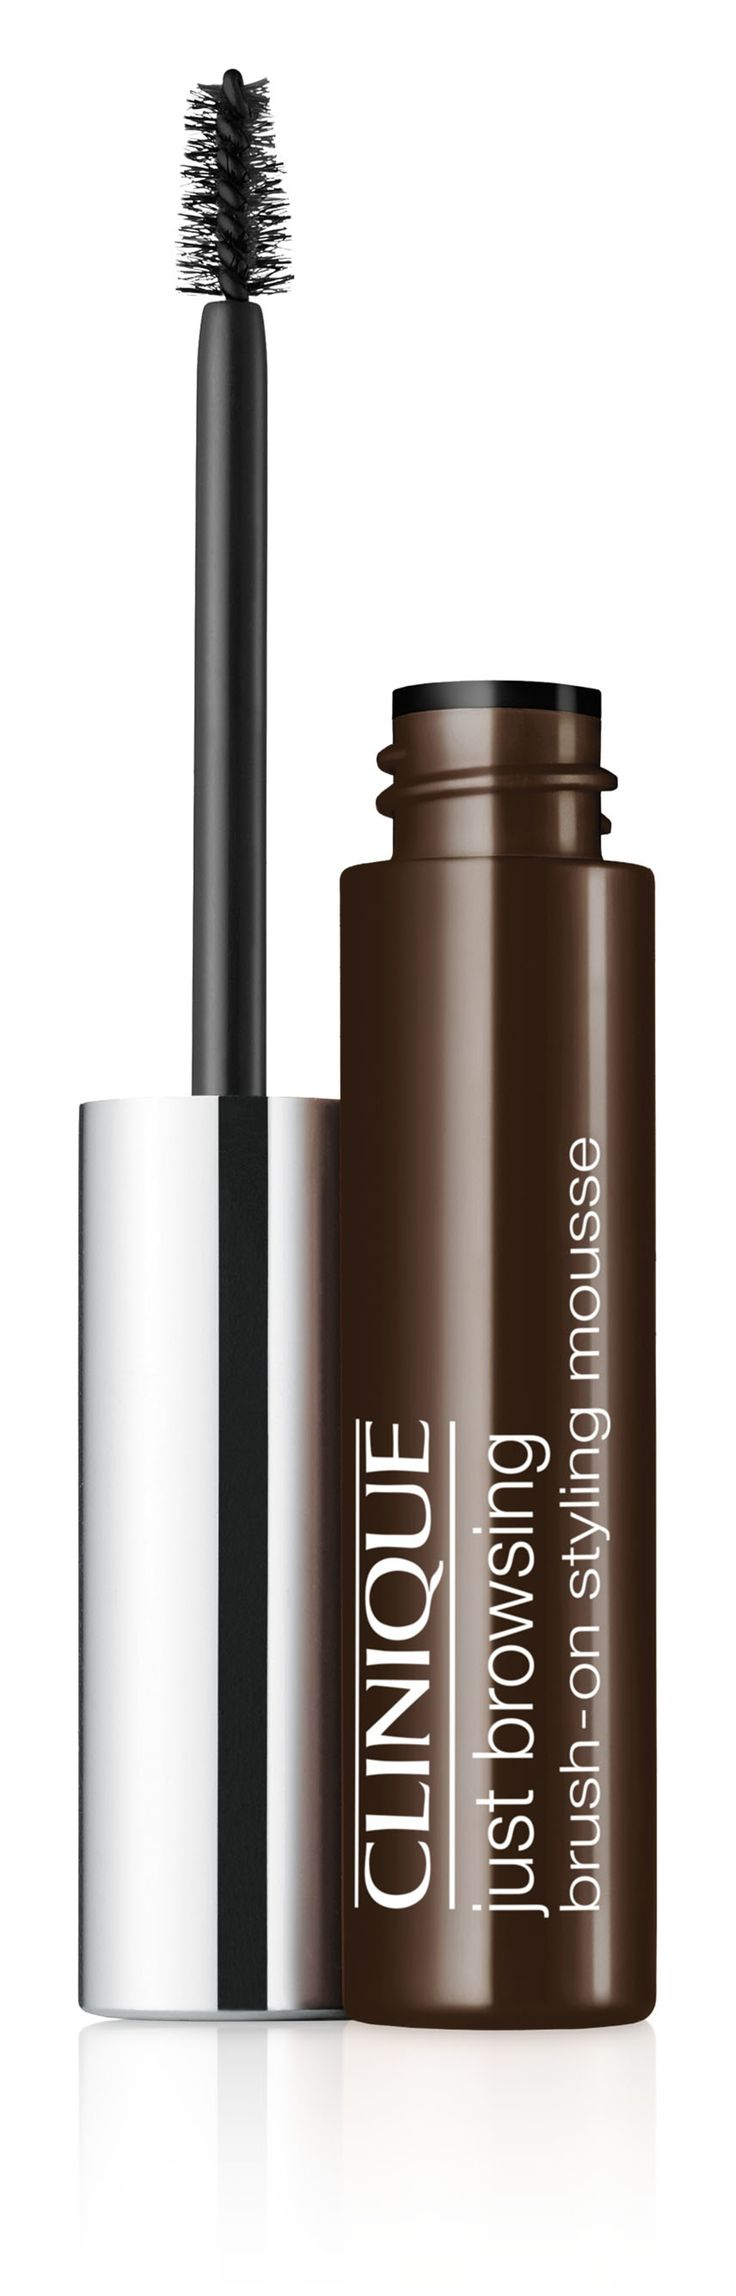 Fall Makeup Trend: Bold Brows. Get the look with Clinique Just Browsing Brush-On Styling Mousse in Black/Brown. 24-hour long-wearing brow mousse tints, tames, fills-in even the sparsest brows.